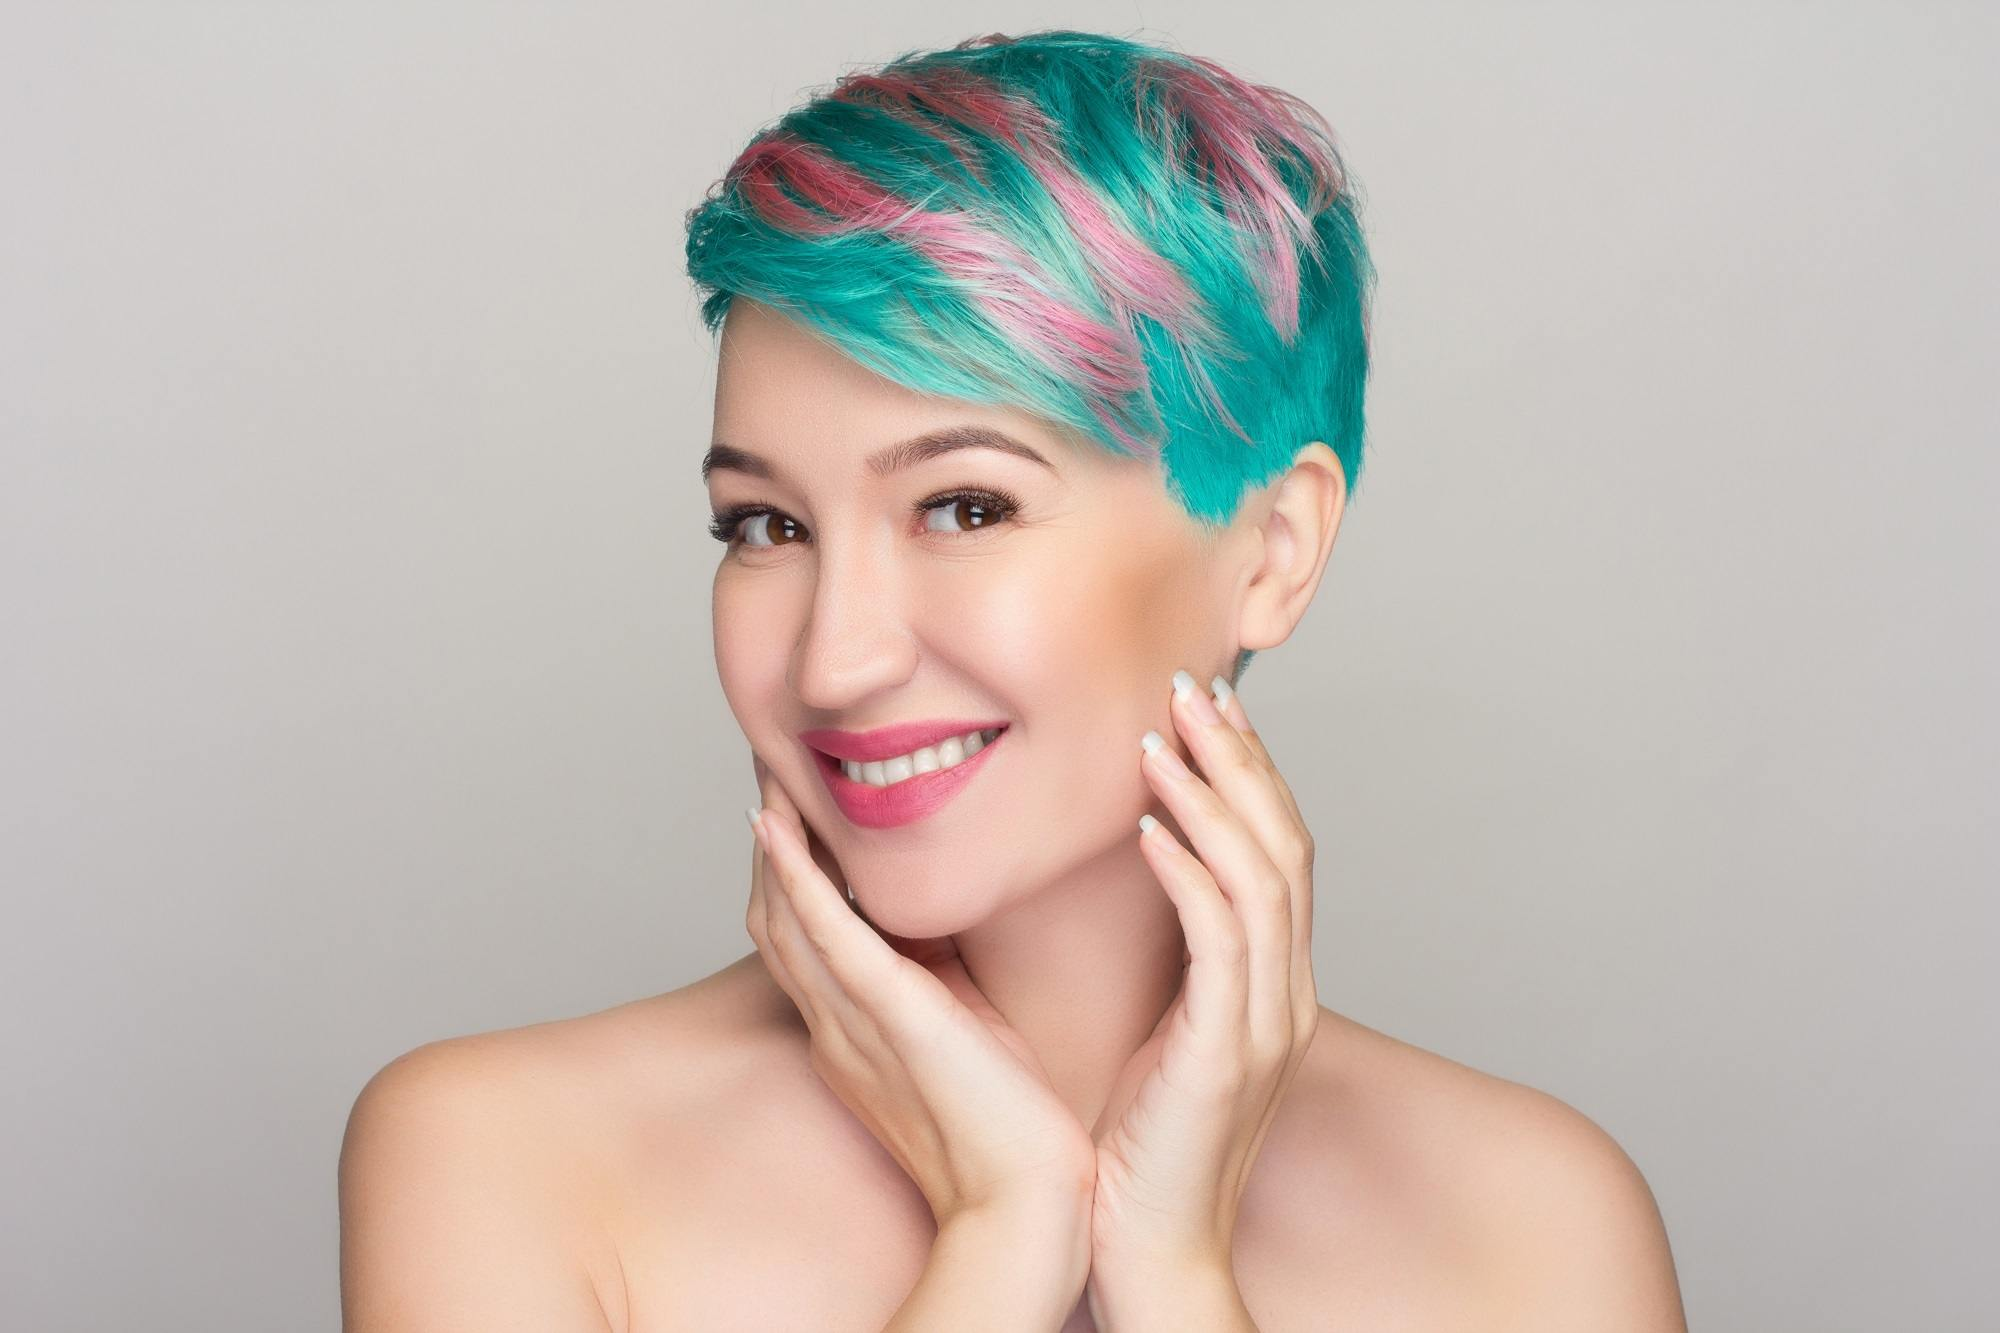 Hair color for short hair: Woman with pixie cut and teal and pink hair